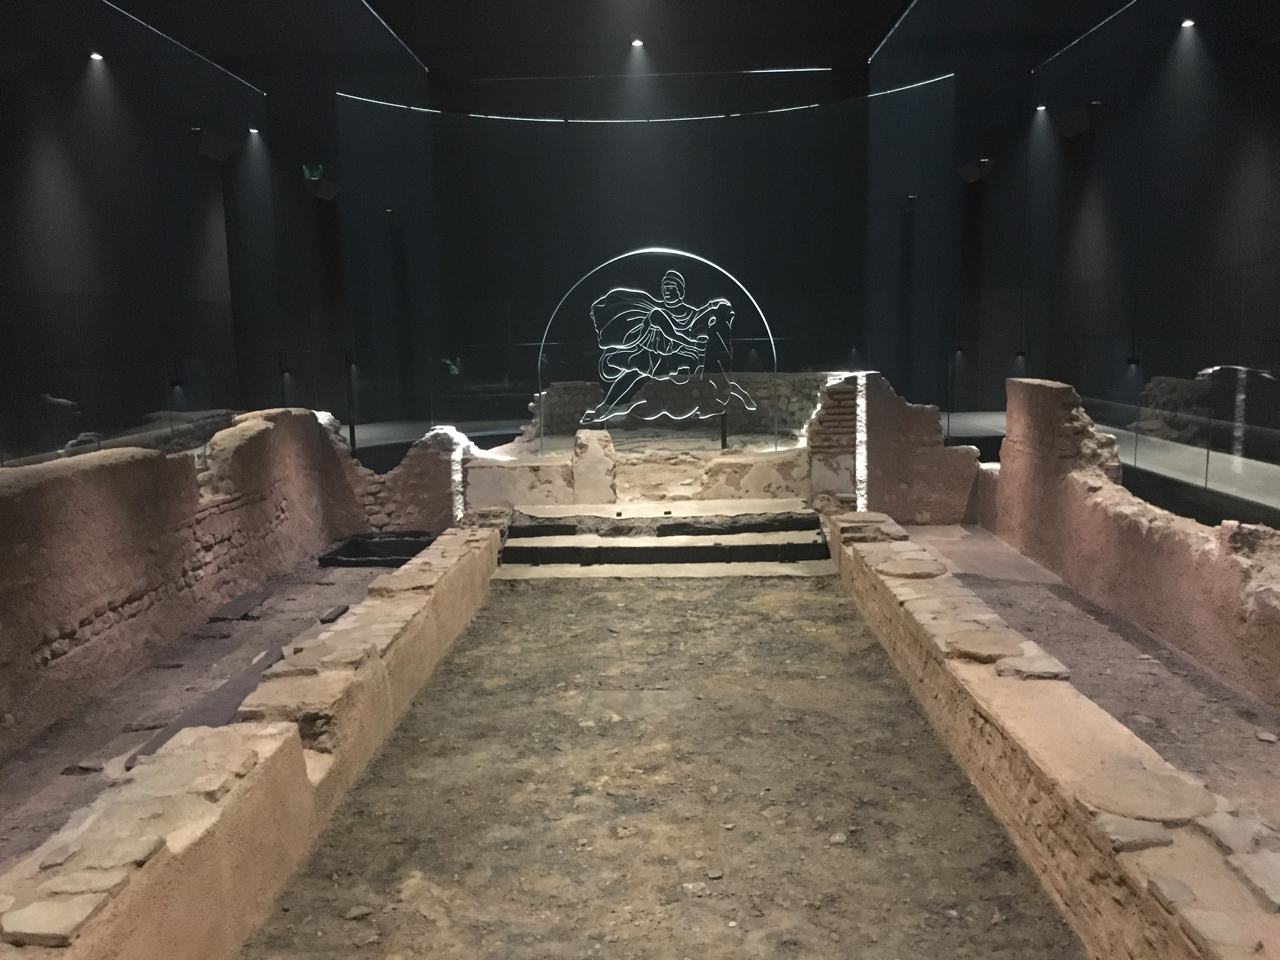 The Temple of Mithras at the London Mithraeum Bloomberg Space